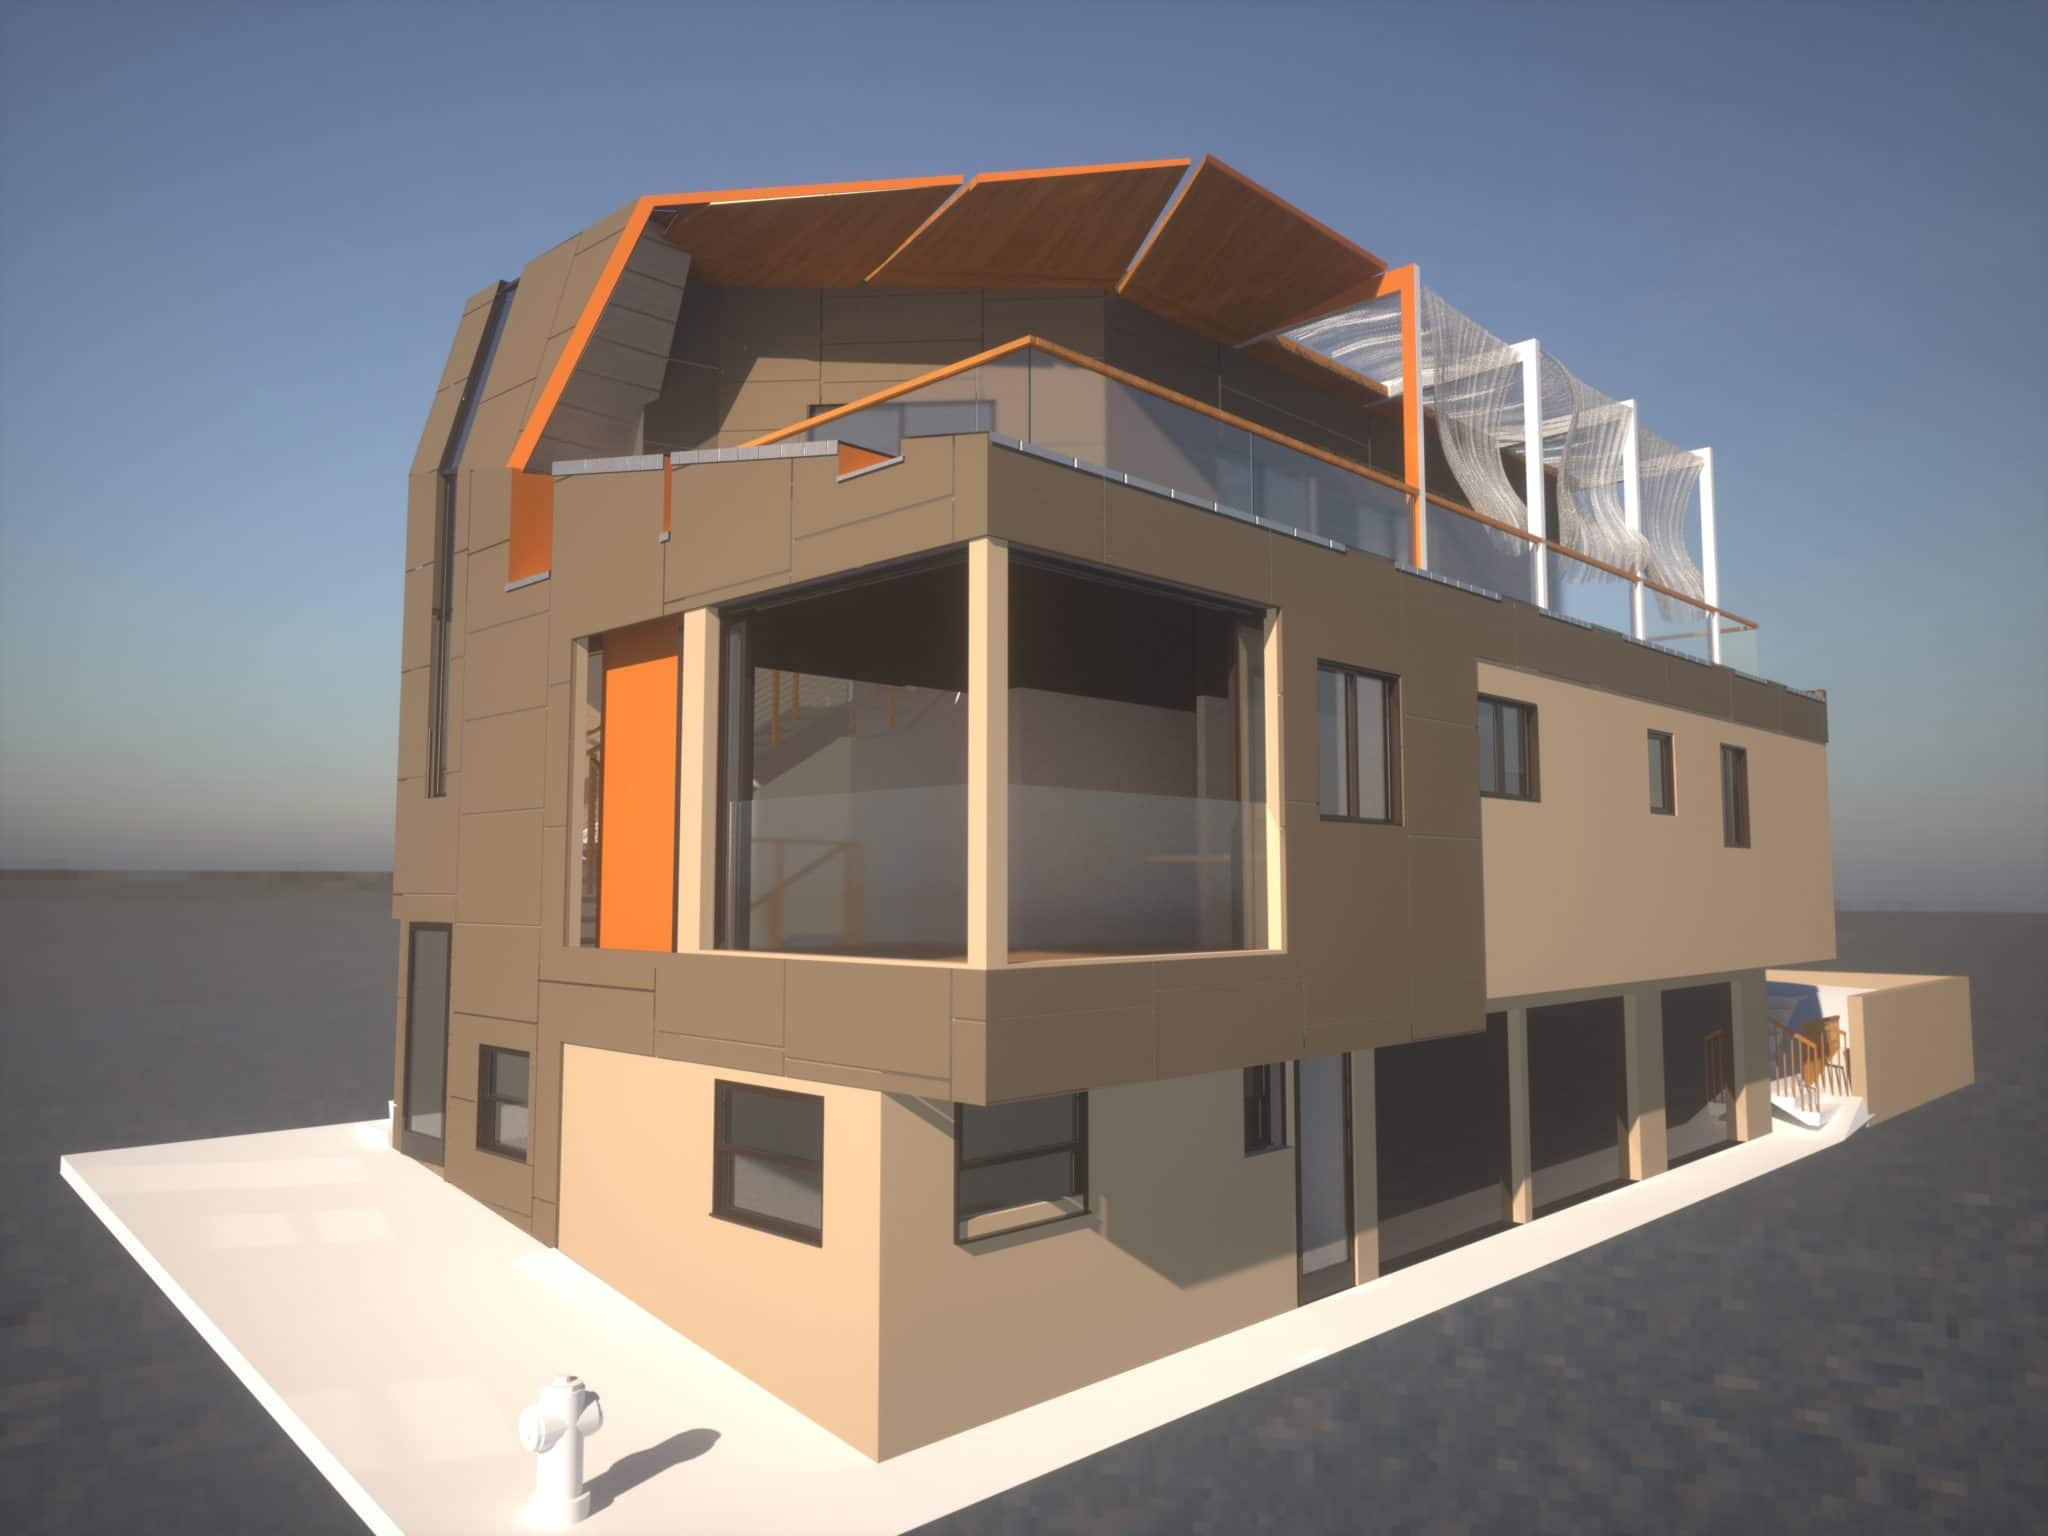 State of the art Rauch Residence - Remodel - Hermosa Beach, CA